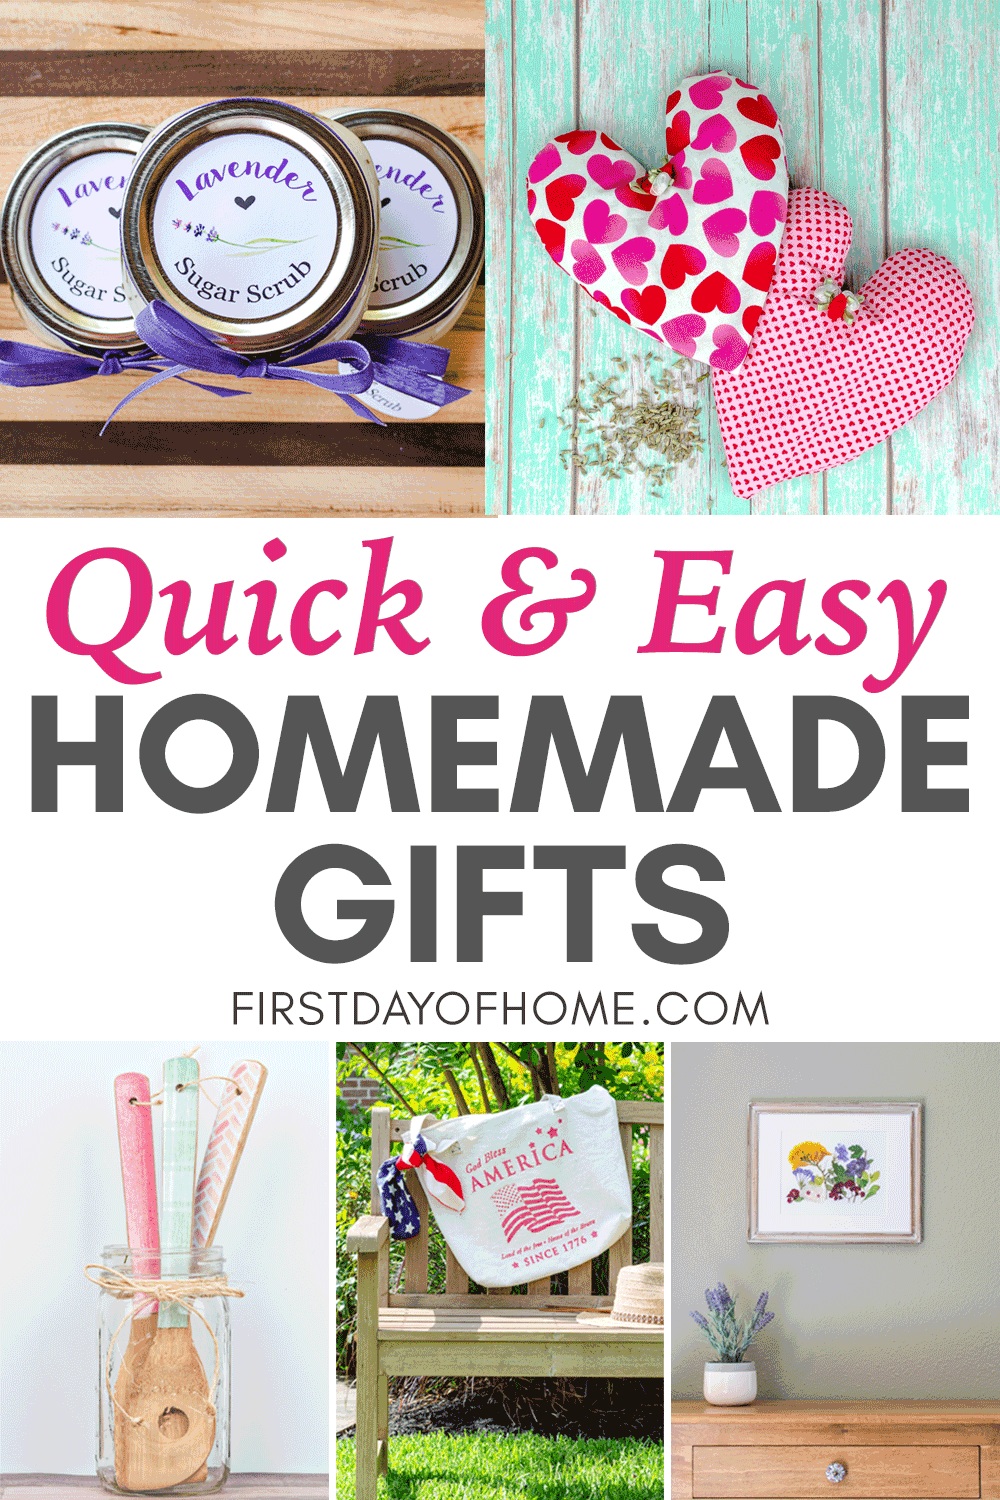 Easy DIY gifts that are homemade and easy to do